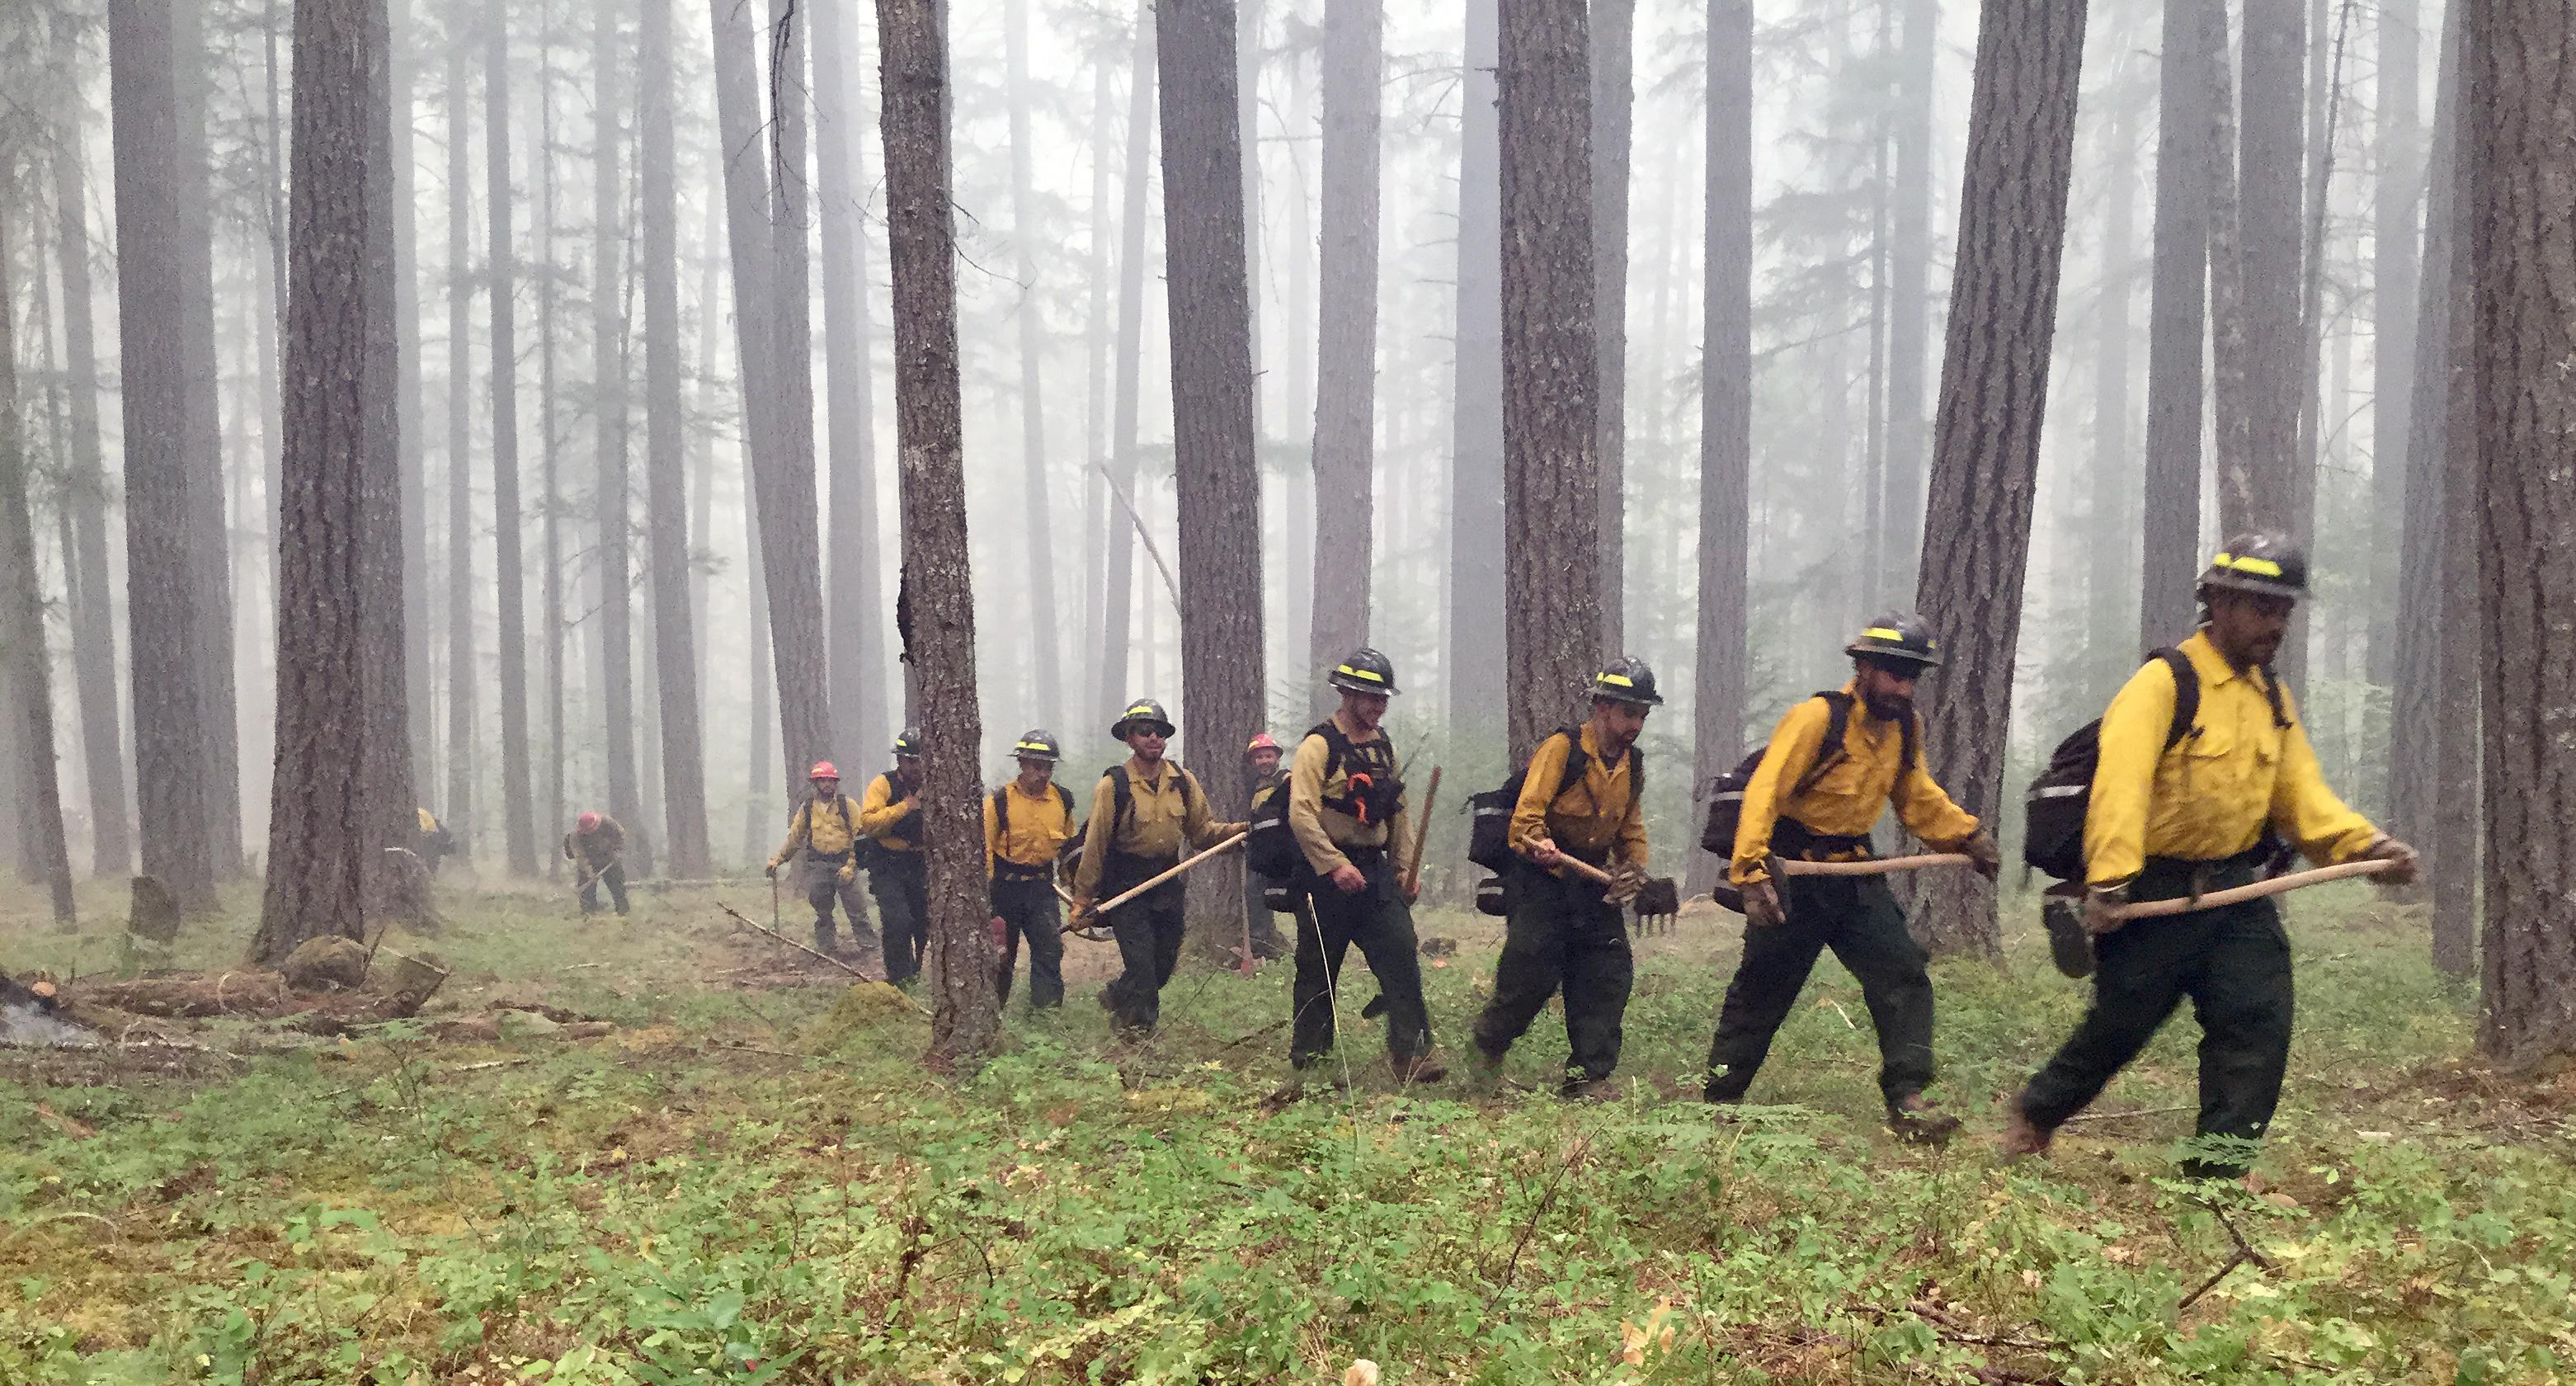 A fire crew hikes to its next assignment August 20, 2017. (Meredith Childs/Alaska Interagency Incident Management Team)